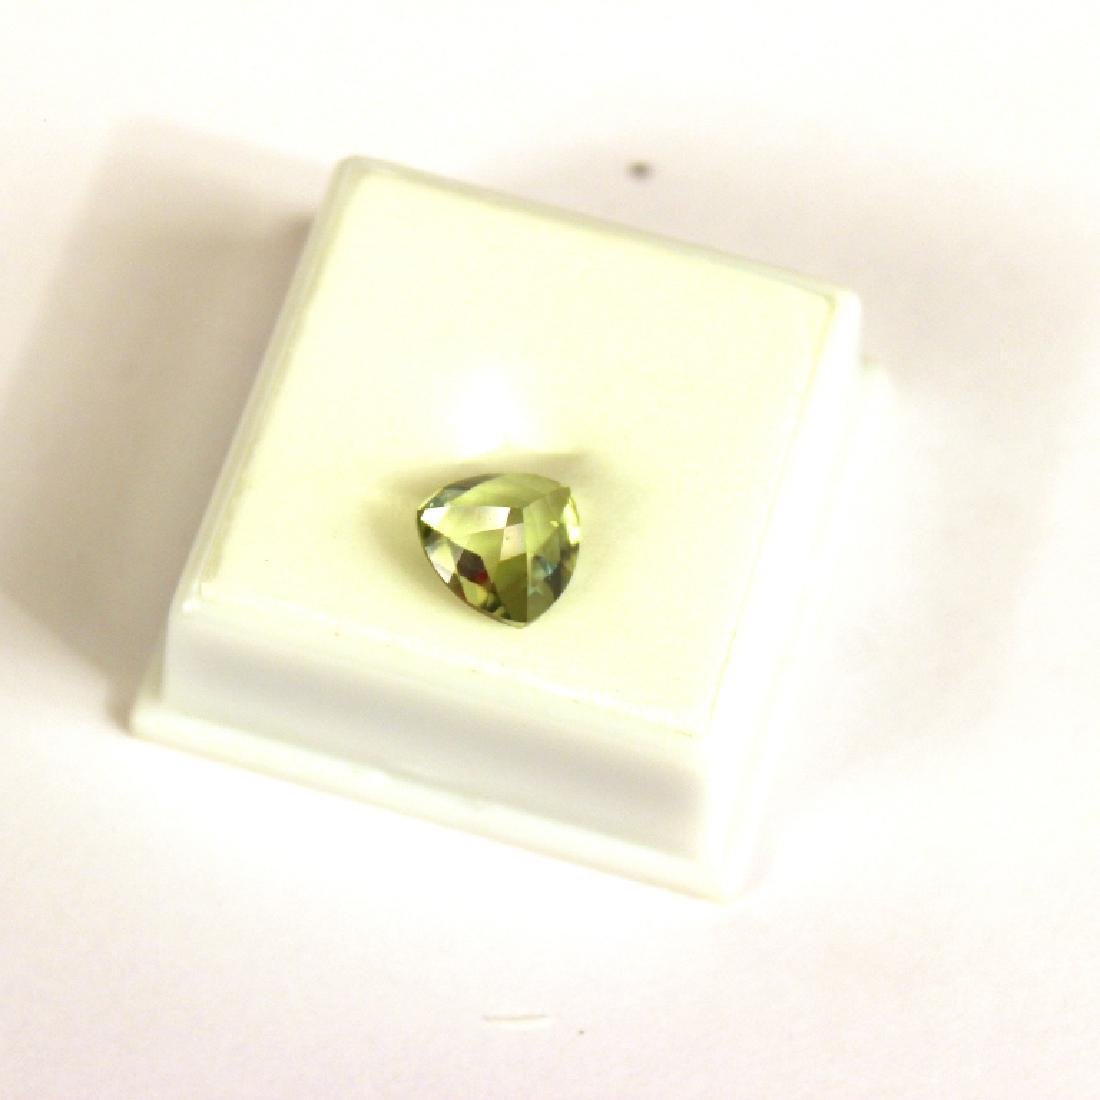 Approx 3.25 CT 10x10MM Kiwi Topaz Gemstone - 4